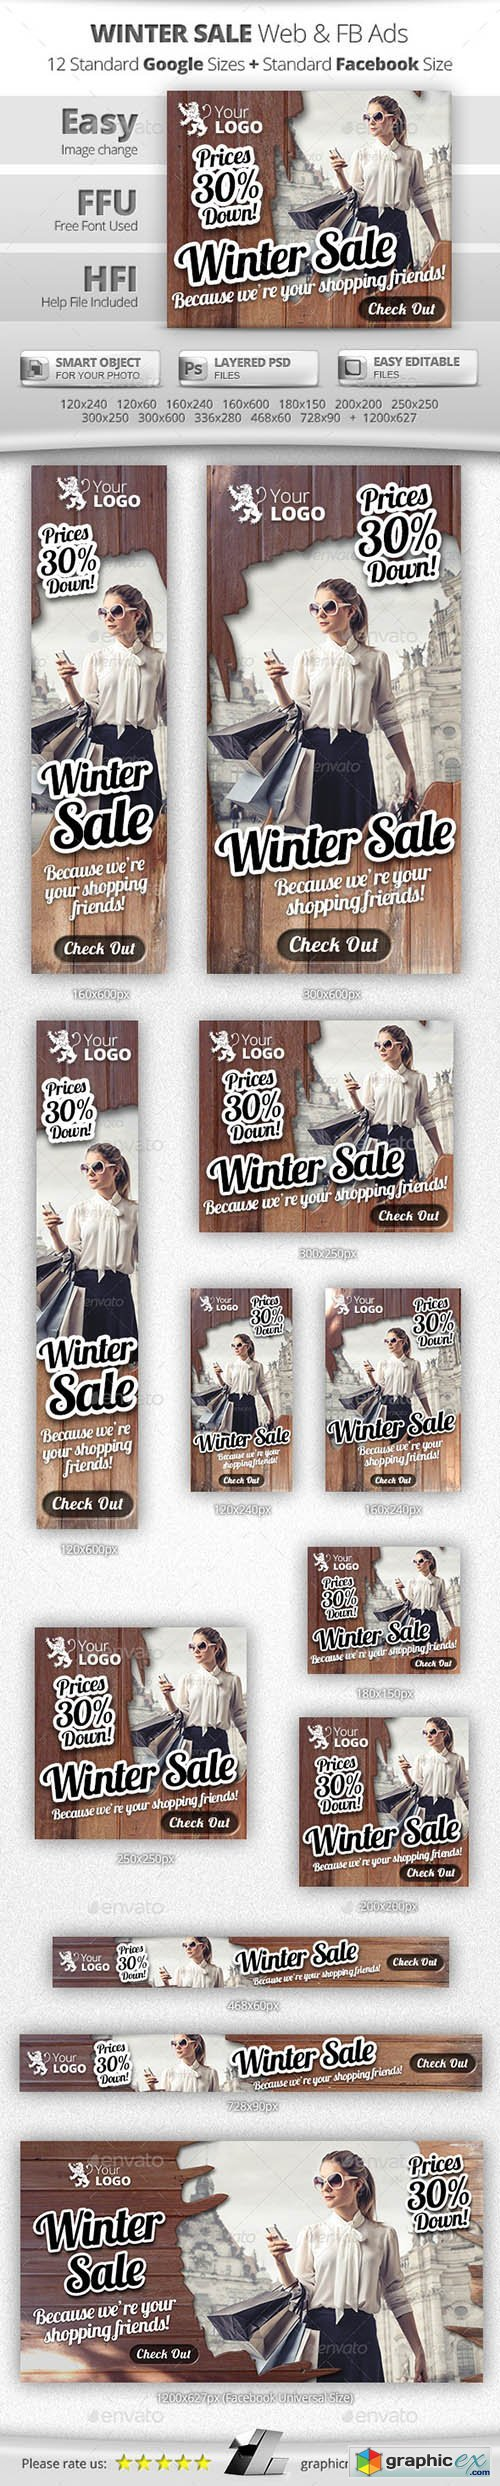 Winter Sale Web & Facebook Banners